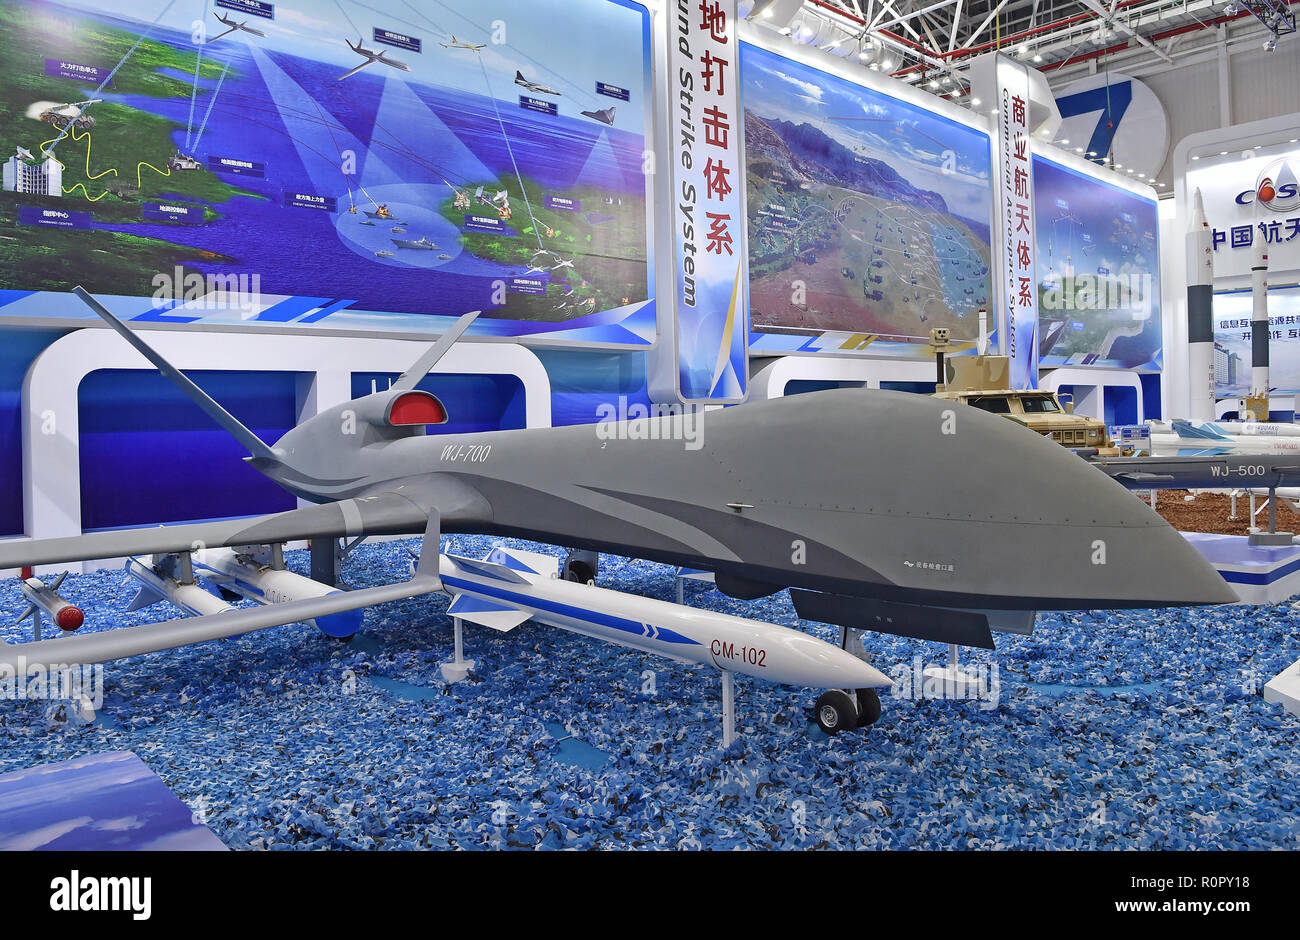 Zhuhai. 5th Nov, 2018. Photo taken on Nov. 5, 2018 shows WJ-700 unmanned aircraft system exhibited at the 12th China International Aviation and Aerospace Exhibition (Airshow China) in Zhuhai, south China's Guangdong Province. The average annual growth rate of the global unmanned aircraft system (UAS) industry will maintain at over 20 percent, and its cumulative output value will exceed 400 billion U.S. dollars in 10 years, according to a white paper released Tuesday. Credit: Liang Xu/Xinhua/Alamy Live News - Stock Image